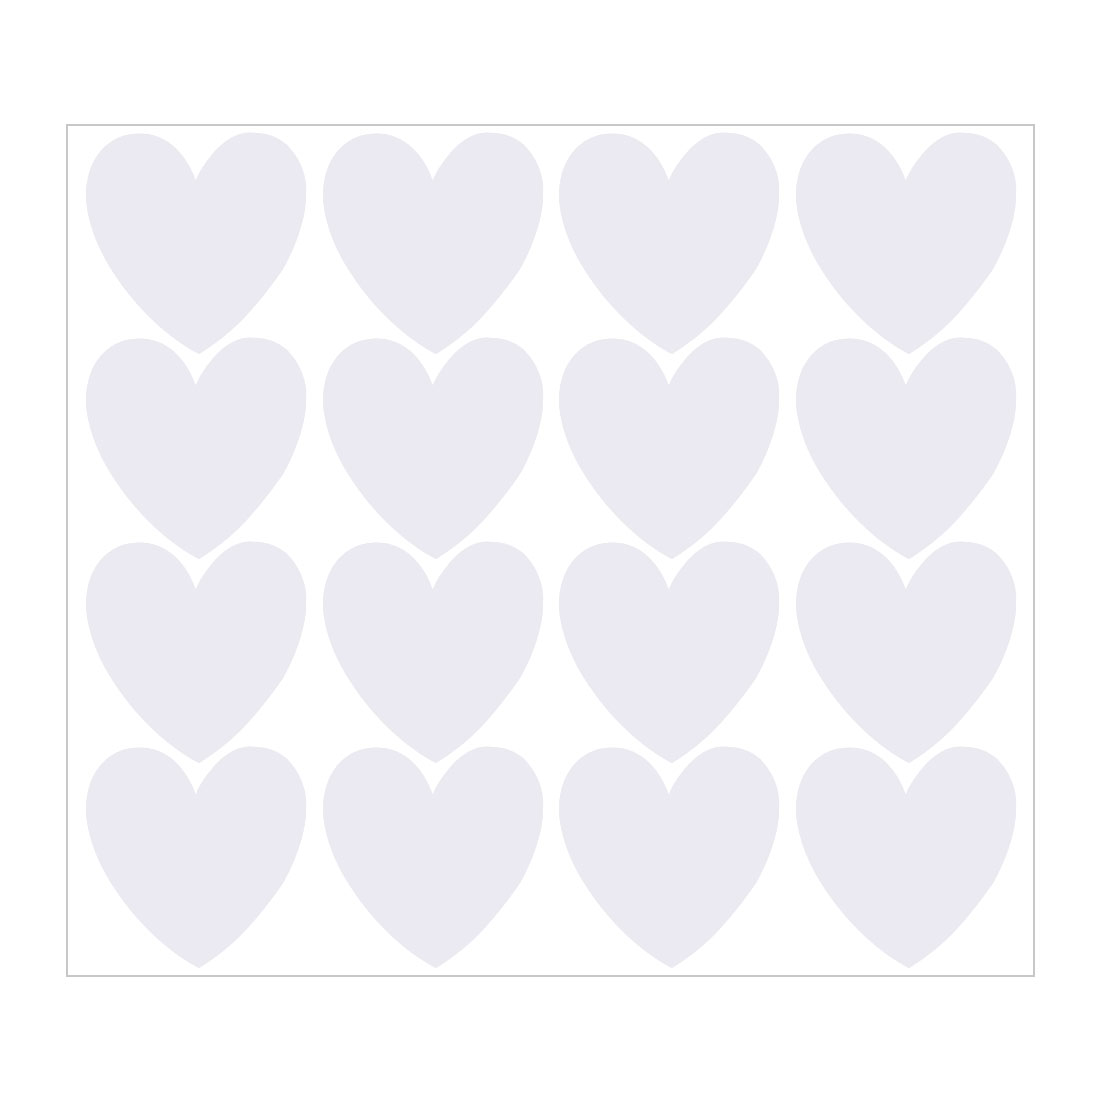 16pcs Heart Shape Wall Stickers Self-stick Decal 5.51 Inch by 5.51 Inch White